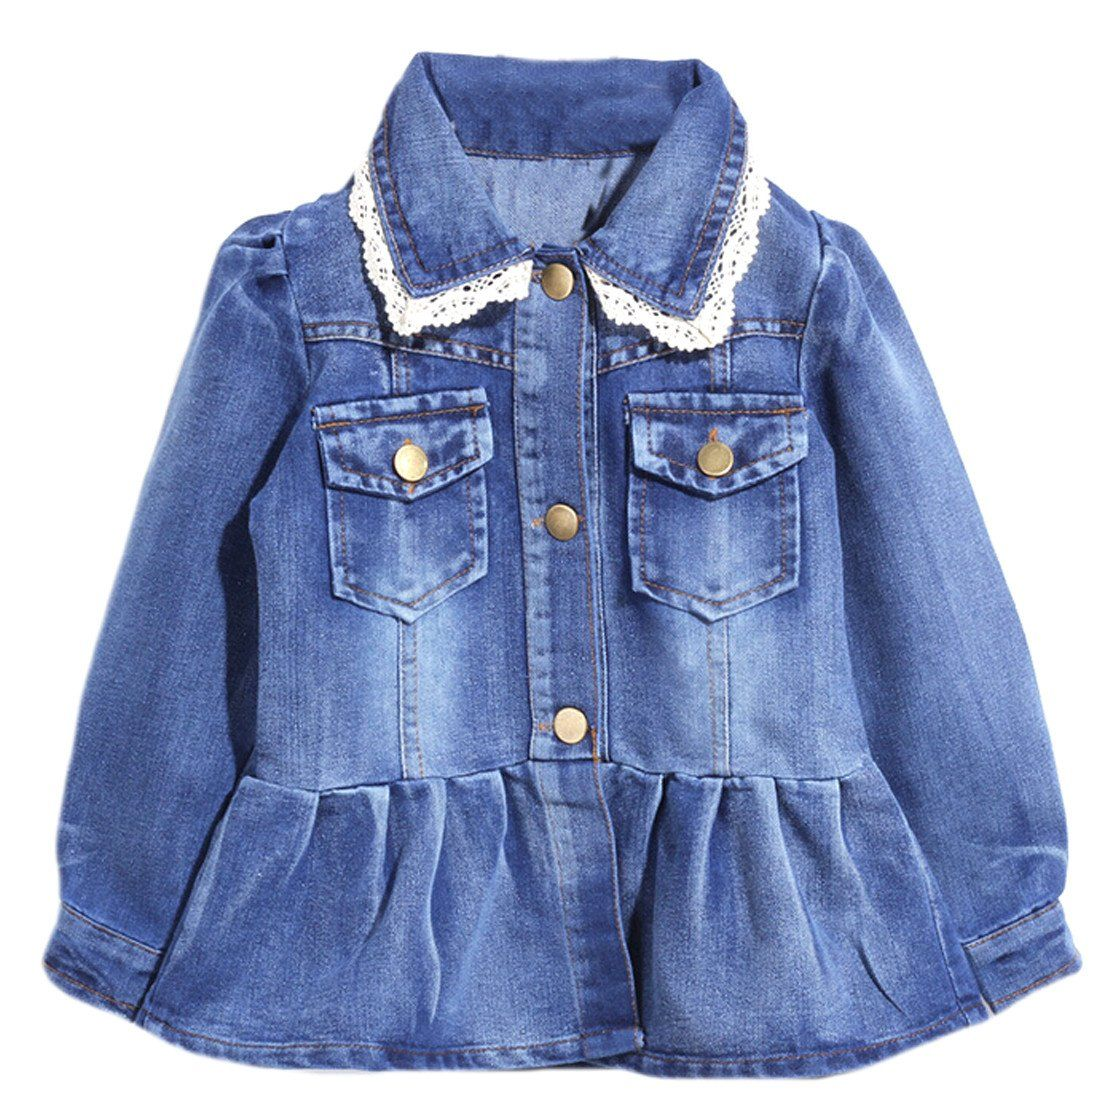 4aba1d540 Pipi kids Boy Girl Wash Patched Button Denim Coat 6y blue. Pay ...